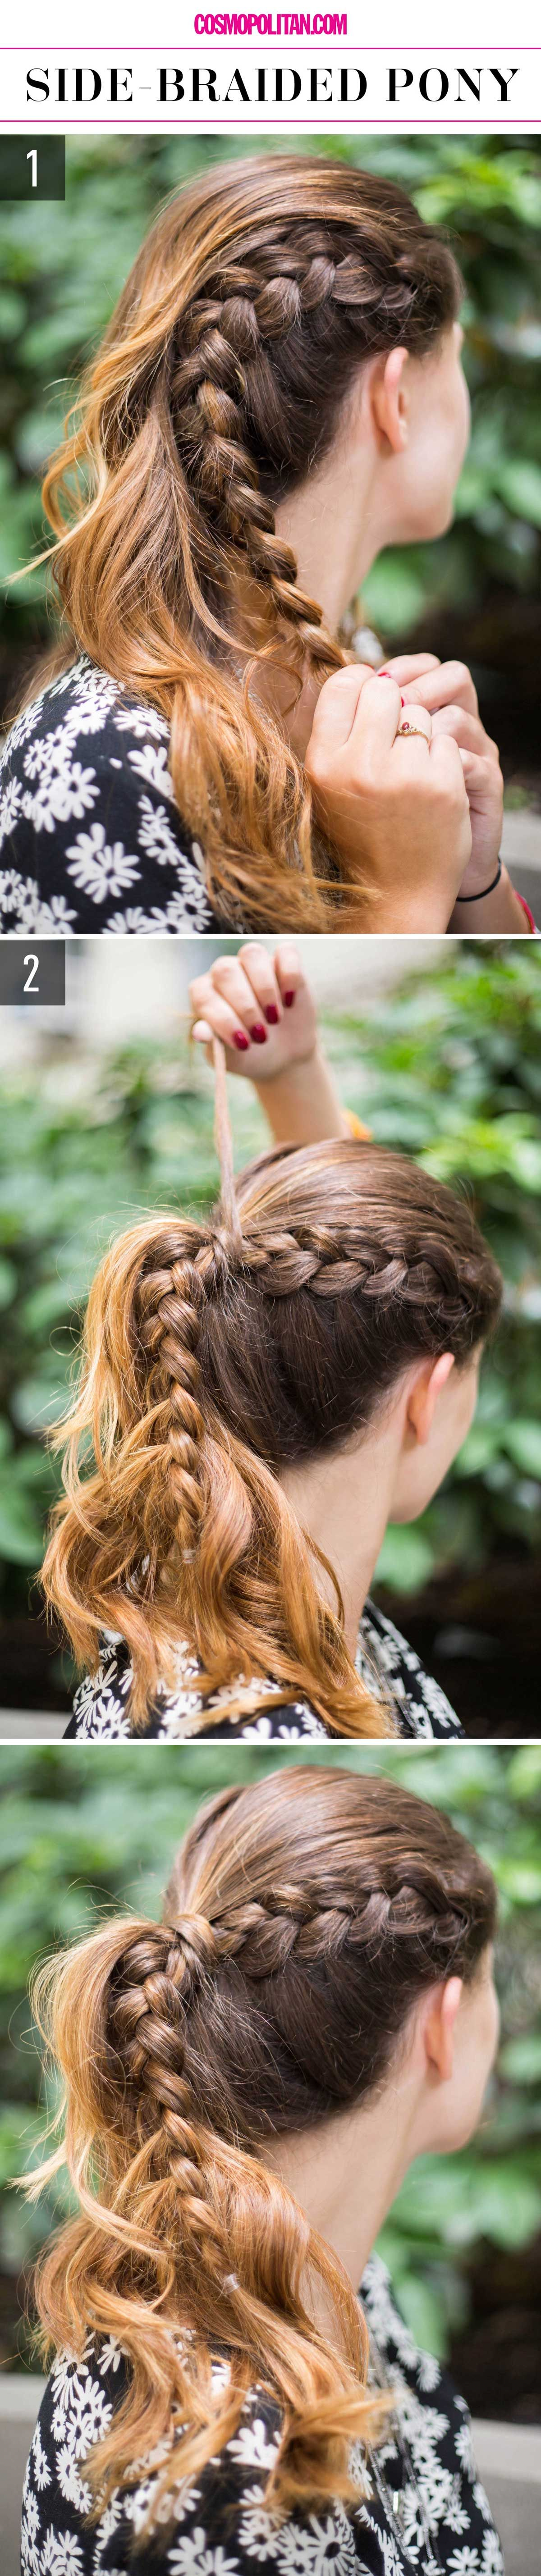 supereasy hairstyles for lazy girls who canut even easy